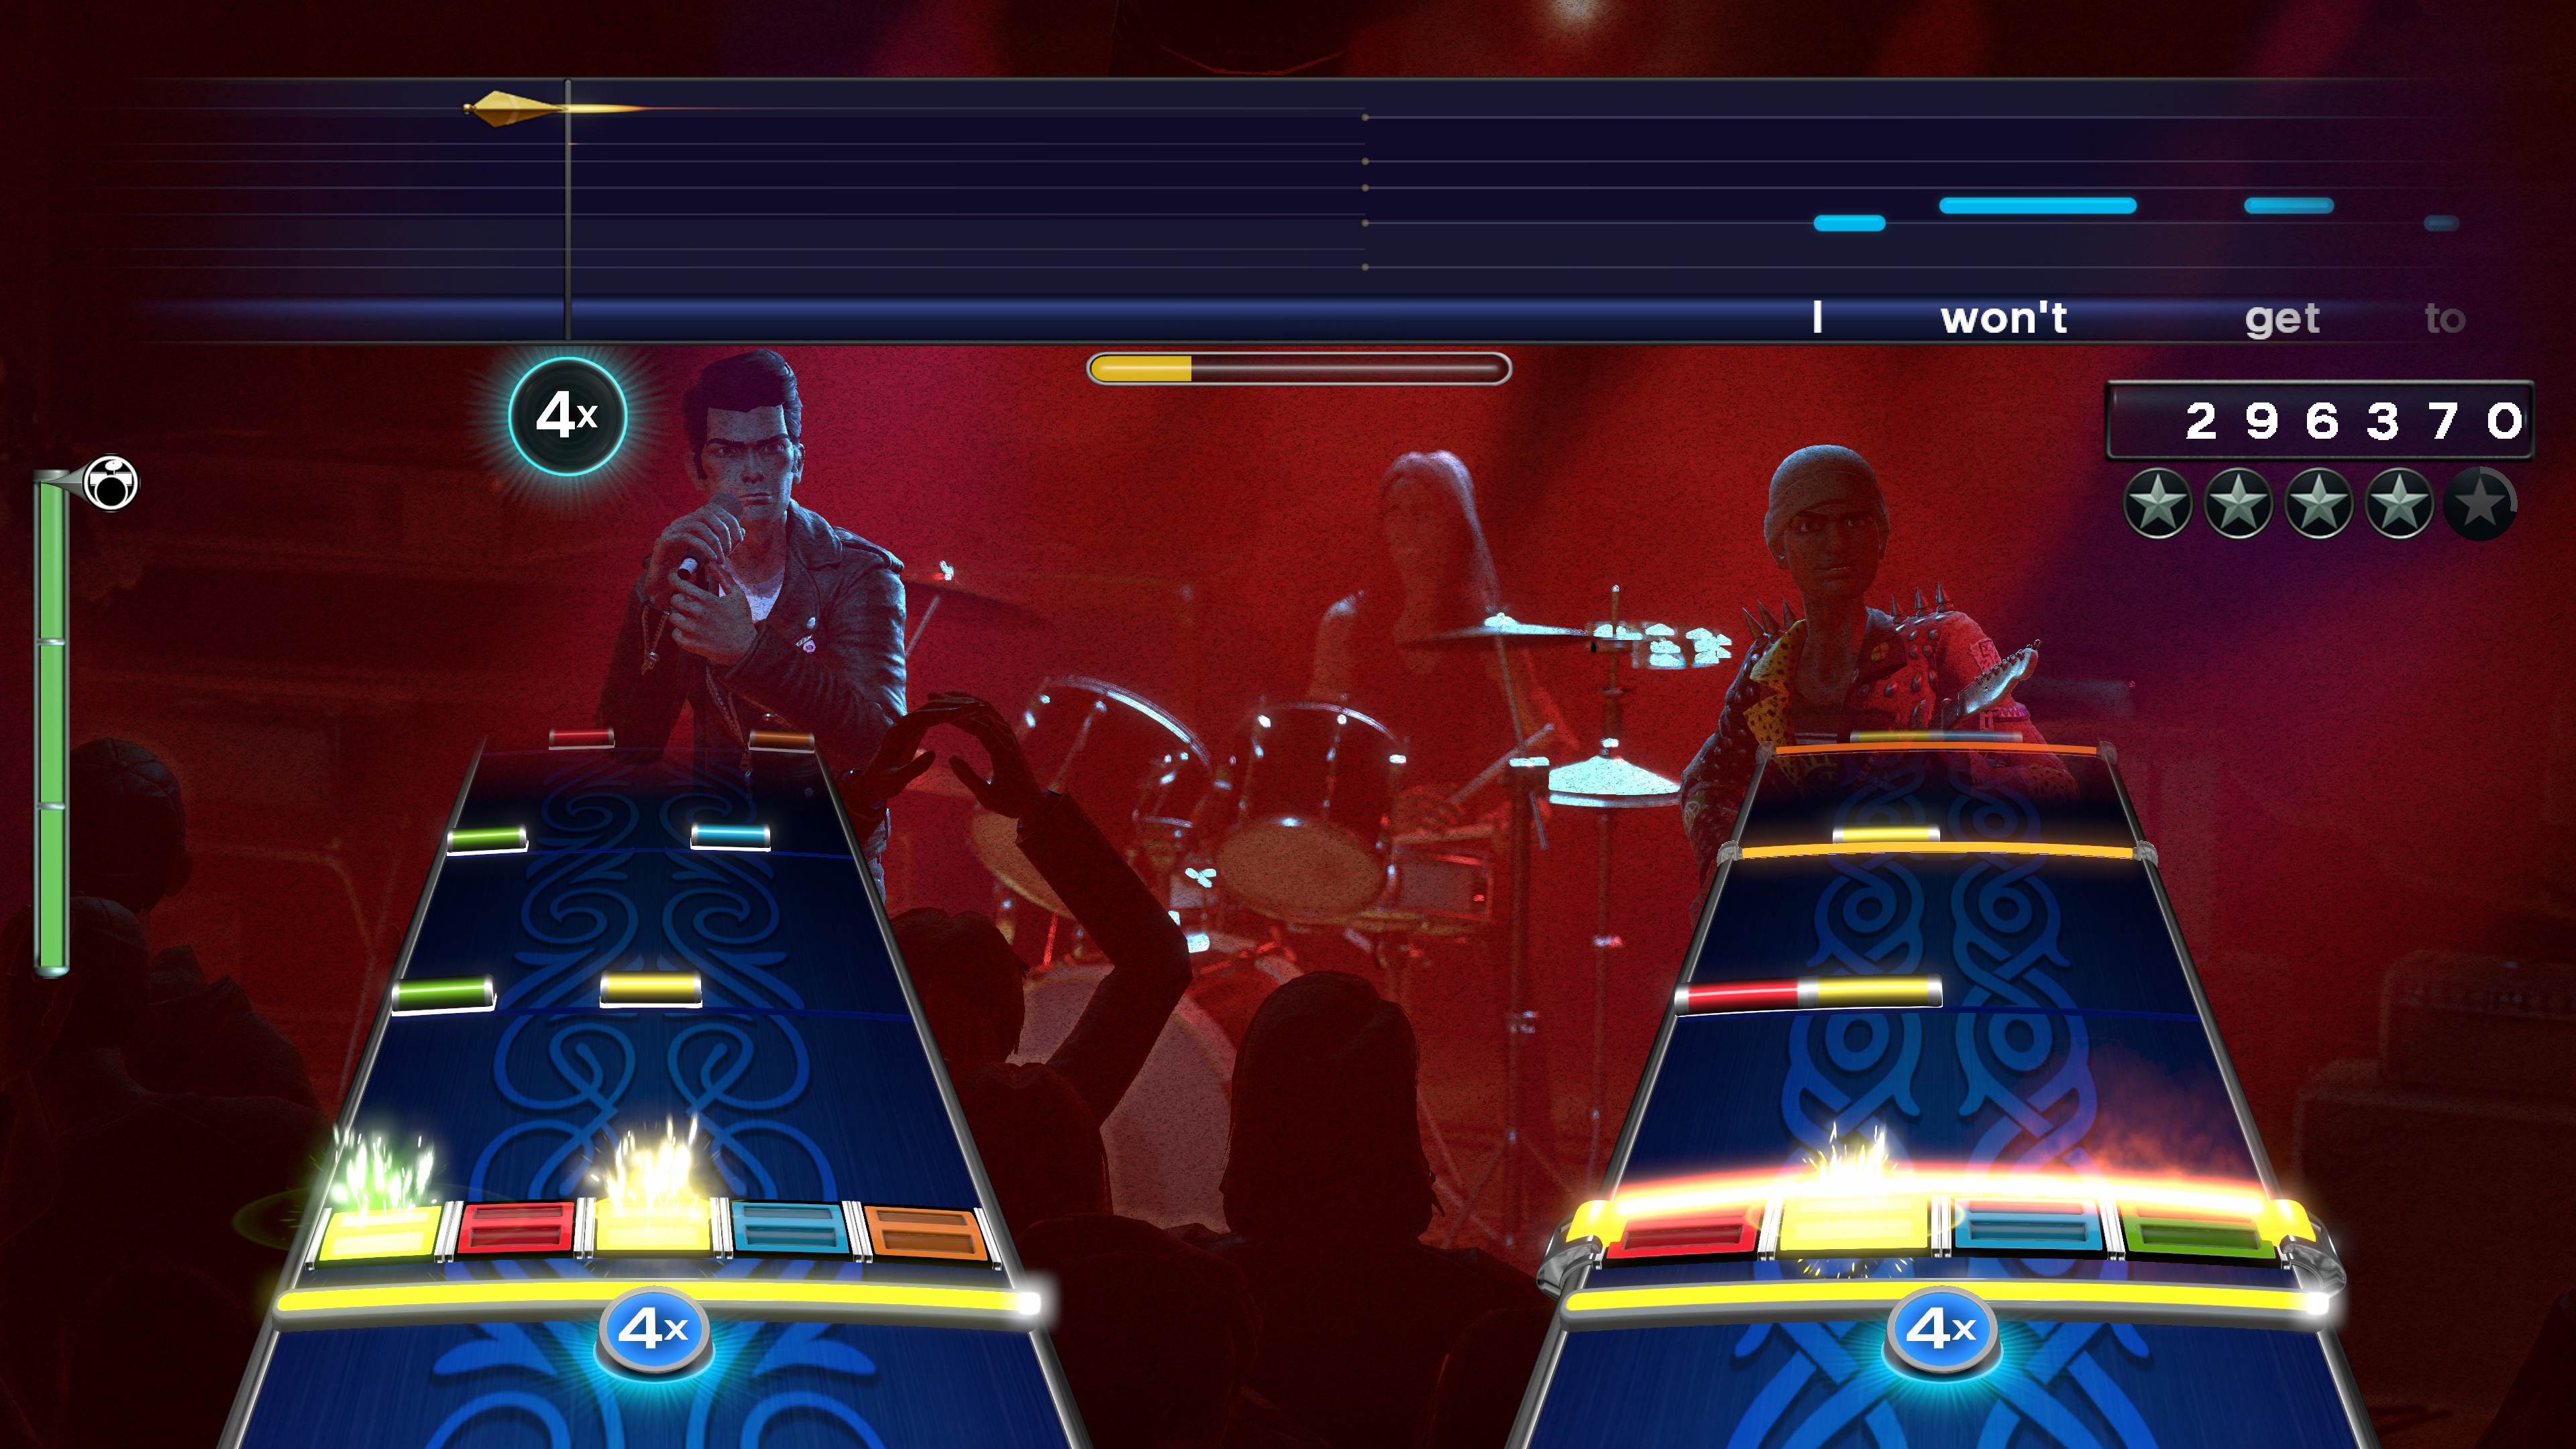 Yup, sure is Rock Band.